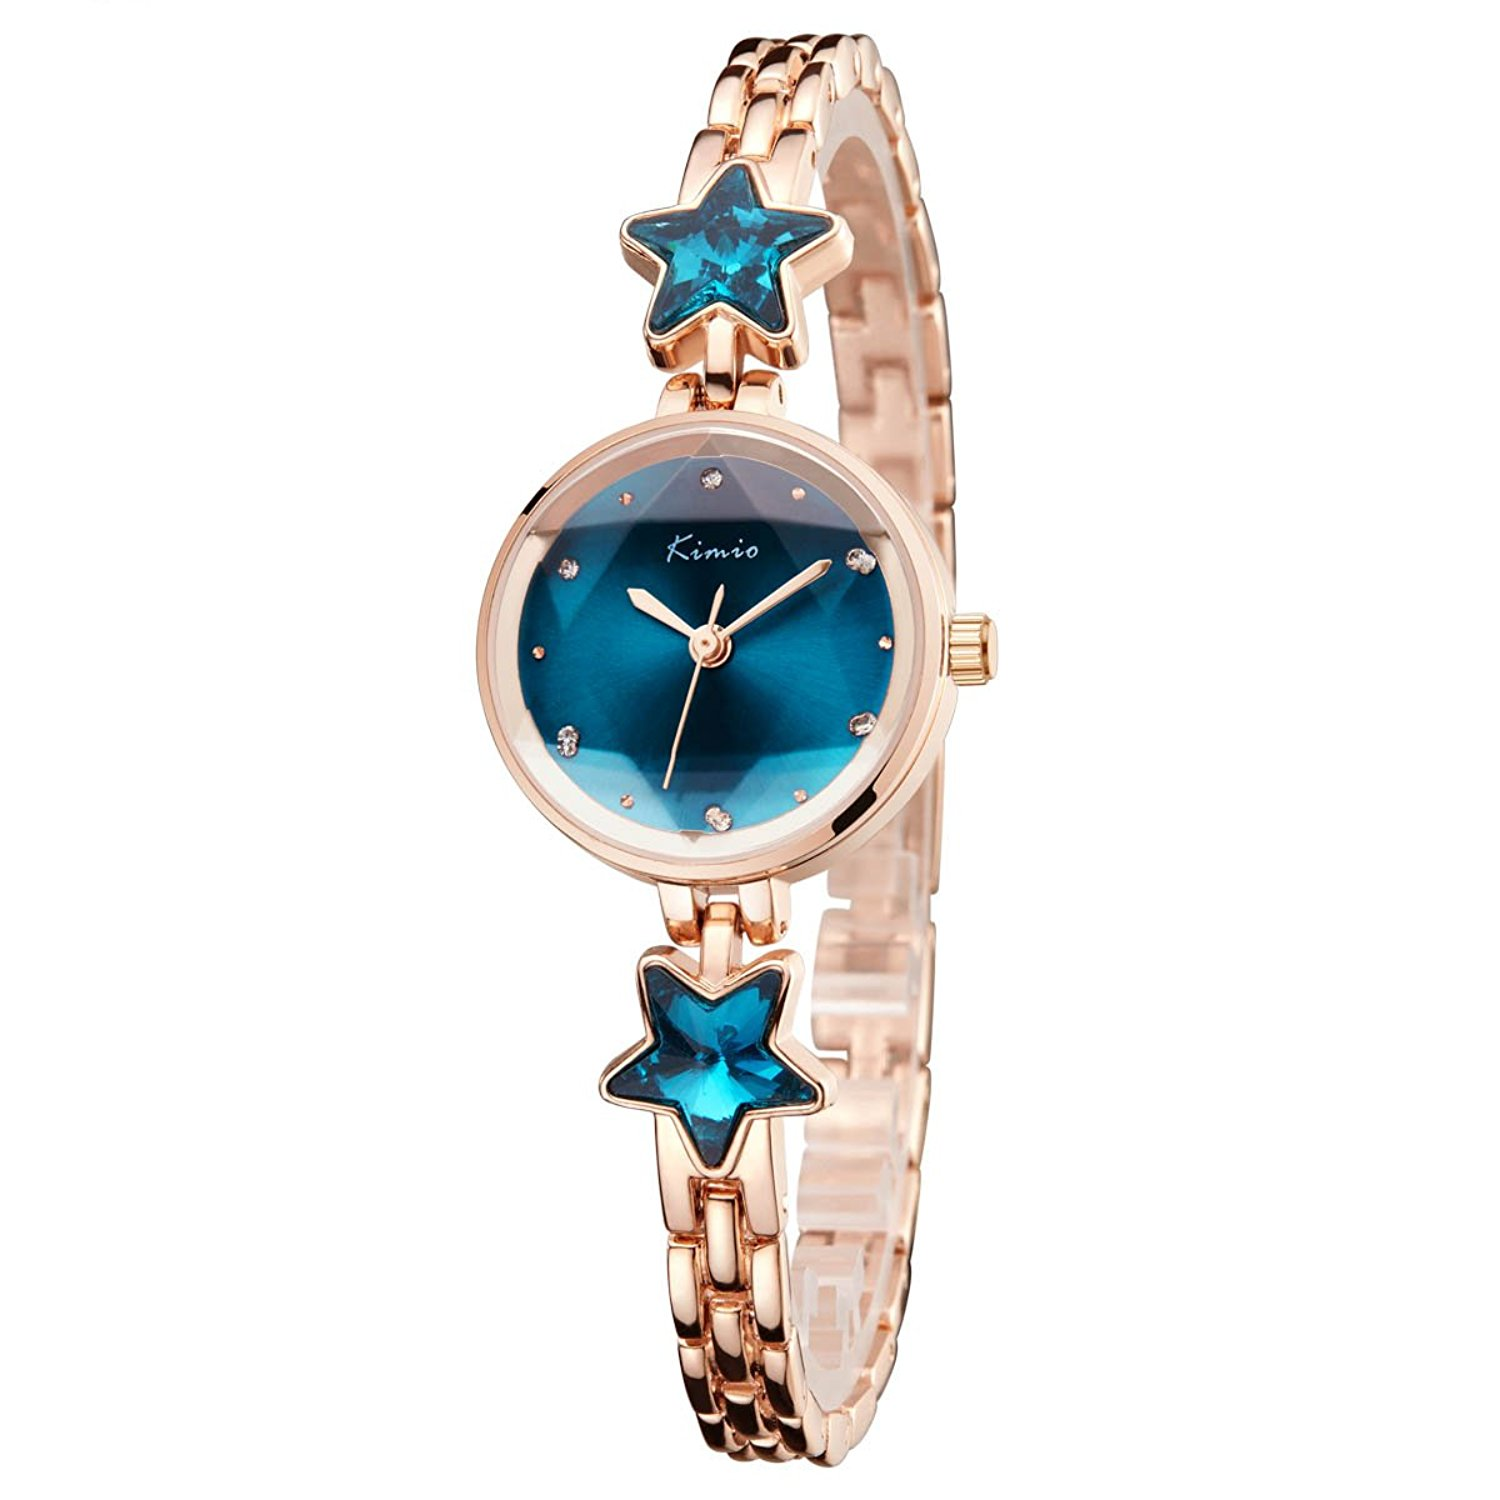 Tayhot Women Bracelet Watches,Women's Quartz Watches,Crystal Dial Womens Watches,Ladies Girls Analog Watches,Luxury Womens Rhinestone Watch with Blue Dial/Rose Gold Band